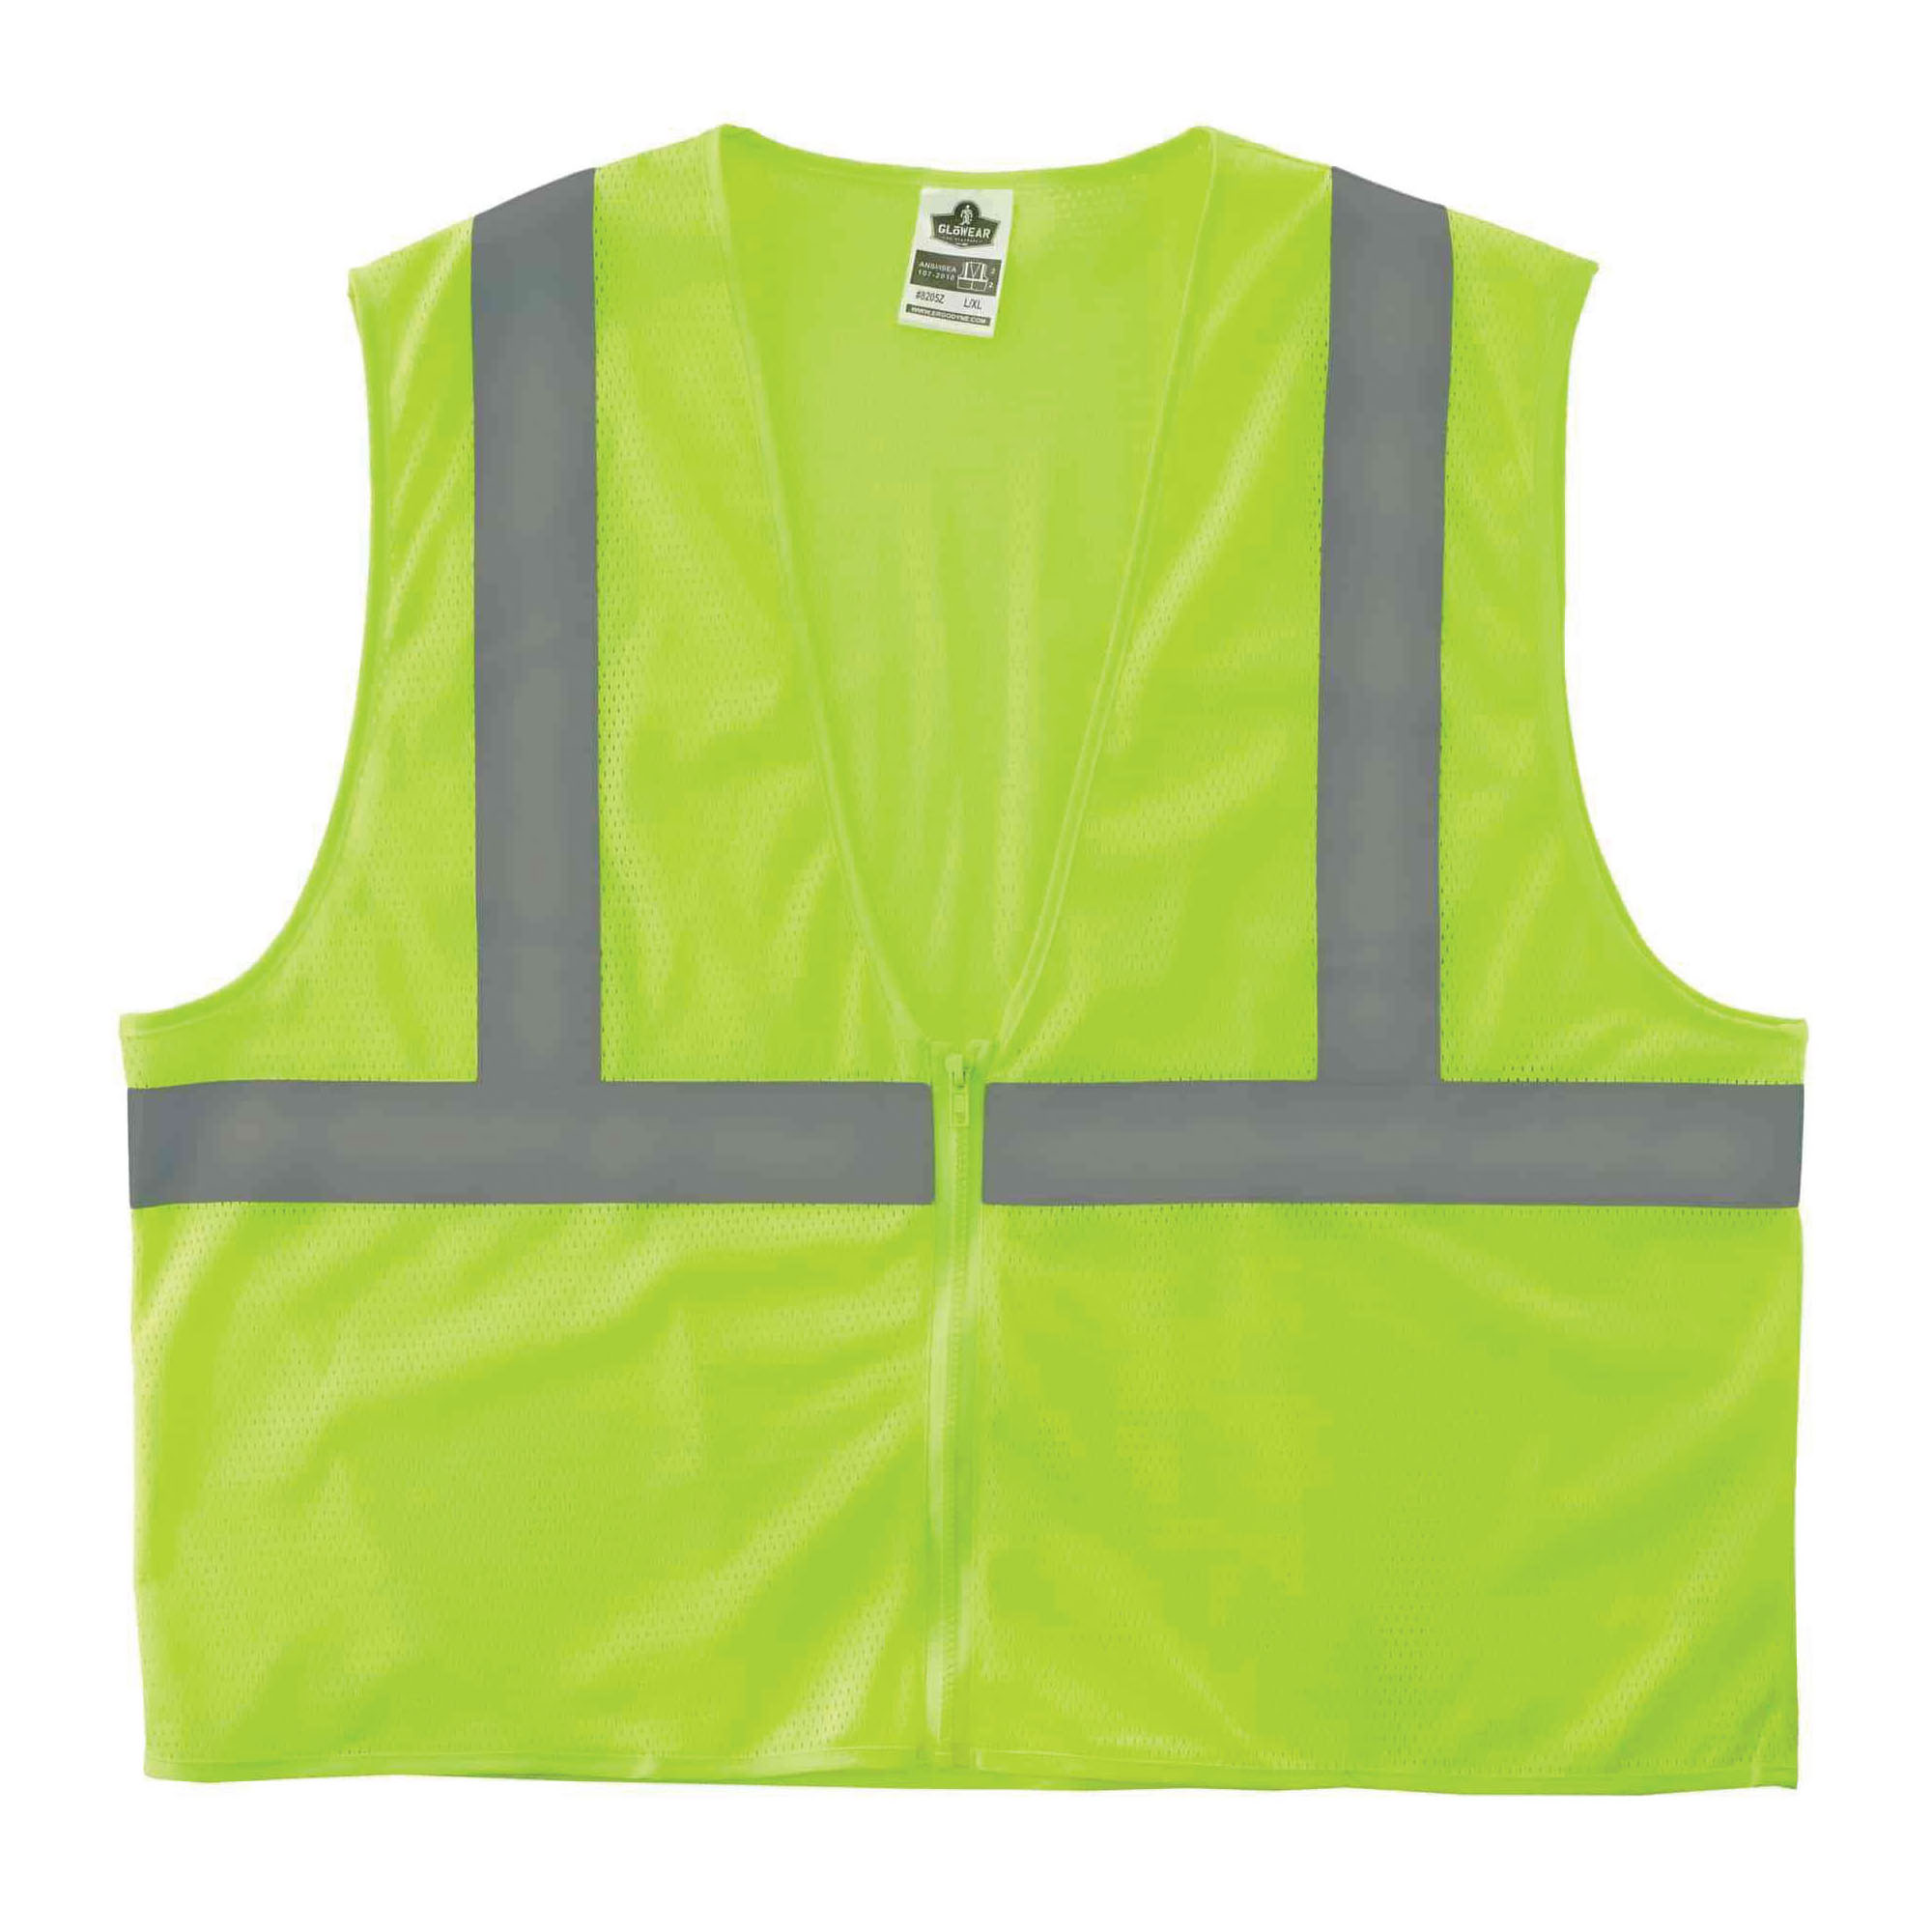 GloWear® 20977 8205HL Super Econo Vest, 2XL/3XL, Hi-Viz Lime, Polyester Mesh, Hook and Loop Closure, ANSI Class: Class 2, Specifications Met: ANSI/ISEA 107-2015 Type R